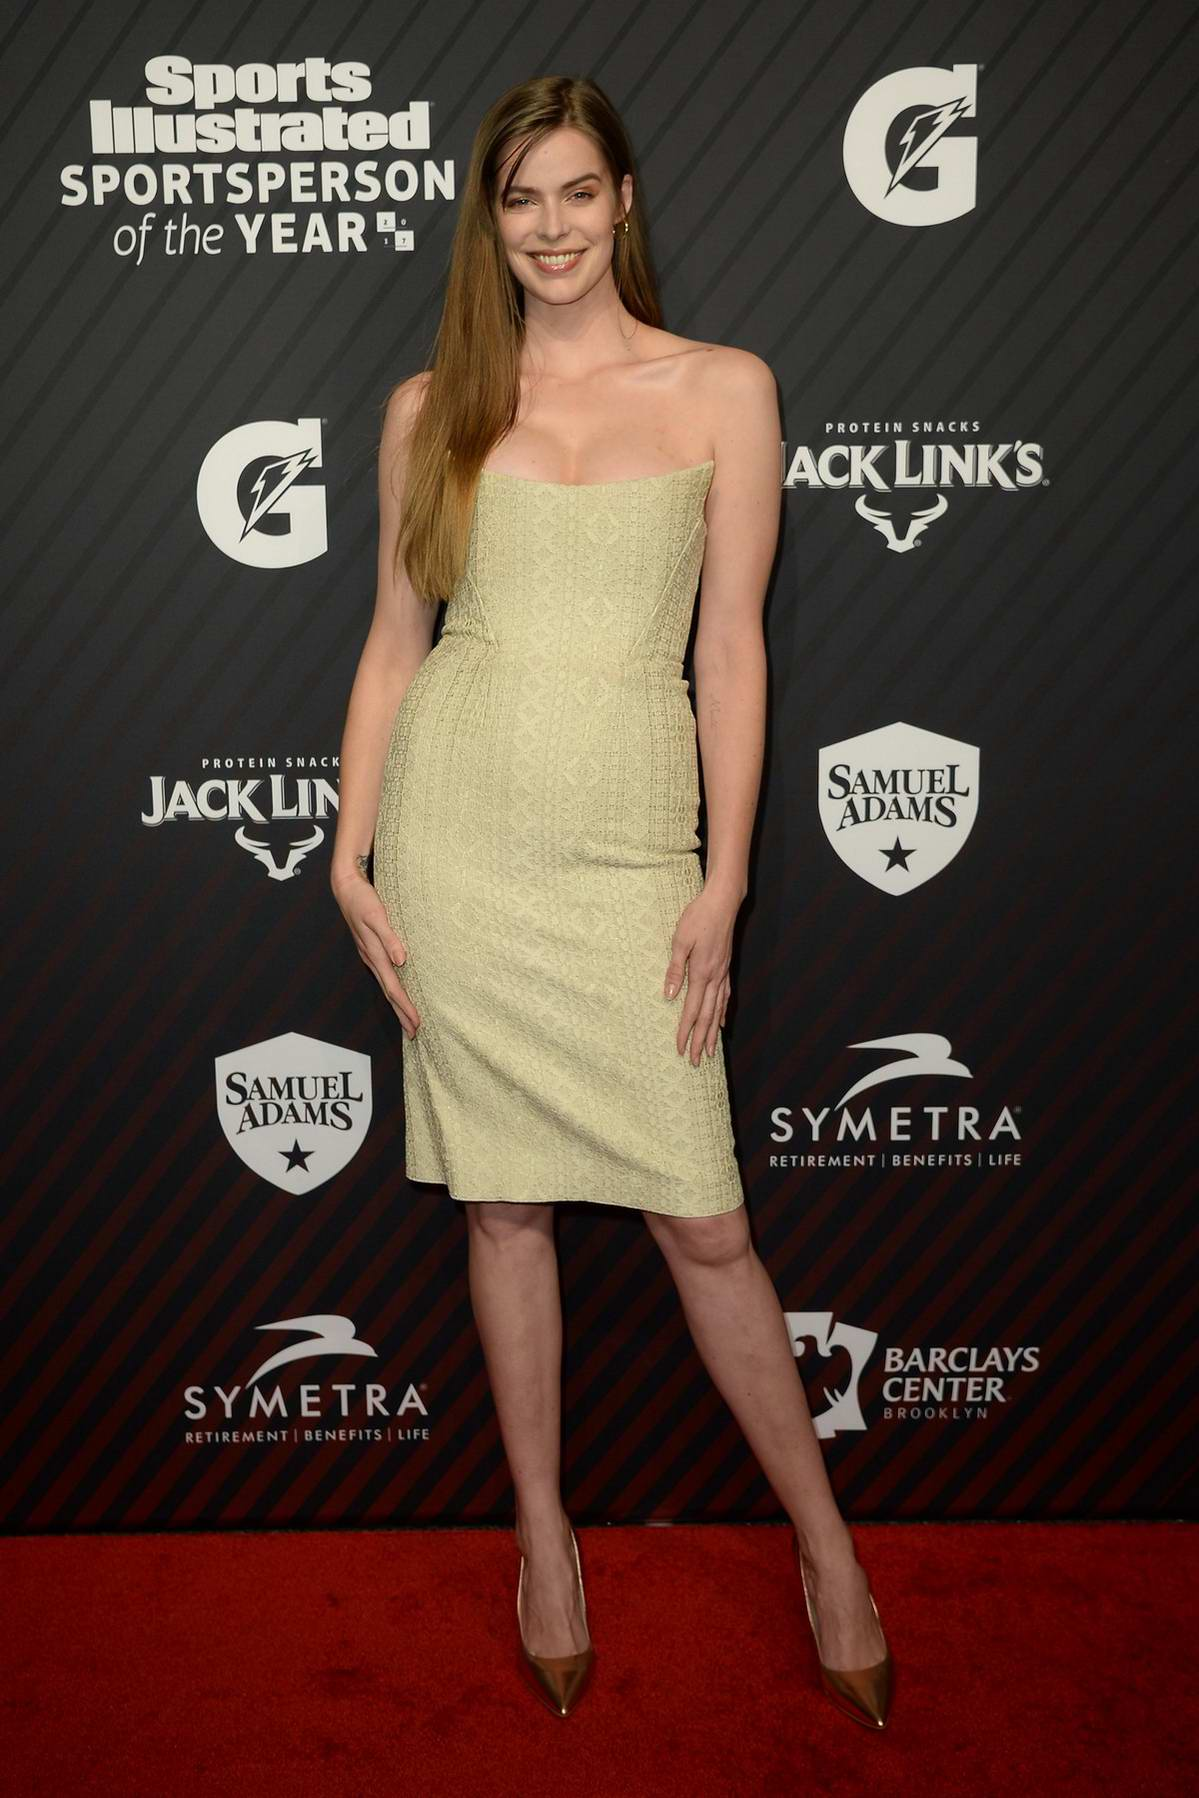 Robyn Lawley at the Sports Illustrated Sportsperson of the Year Awards at Barclay Center in New York